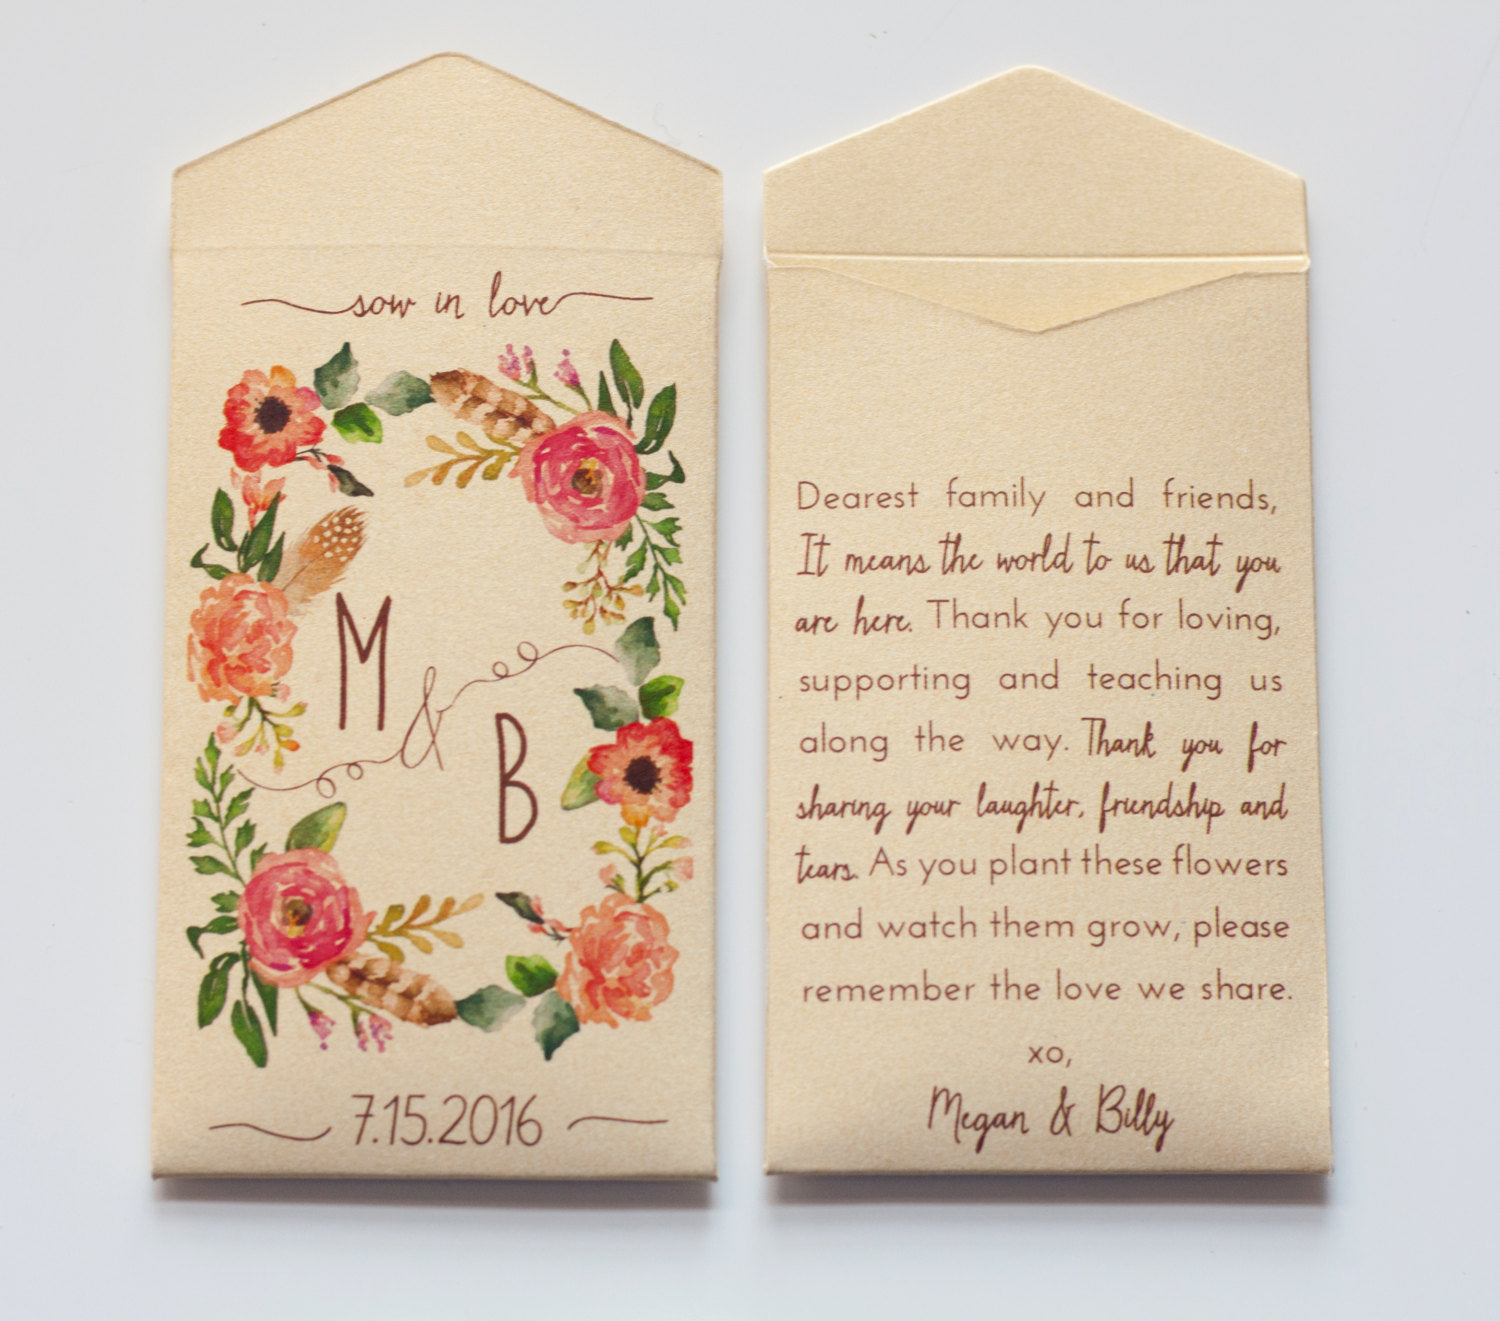 Custom Gold Seed Packet Wedding Favor Envelopes - Shimmer Gold Wedding Favor Envelopes - Rustic Gold Seed Packets - Many Colors Available